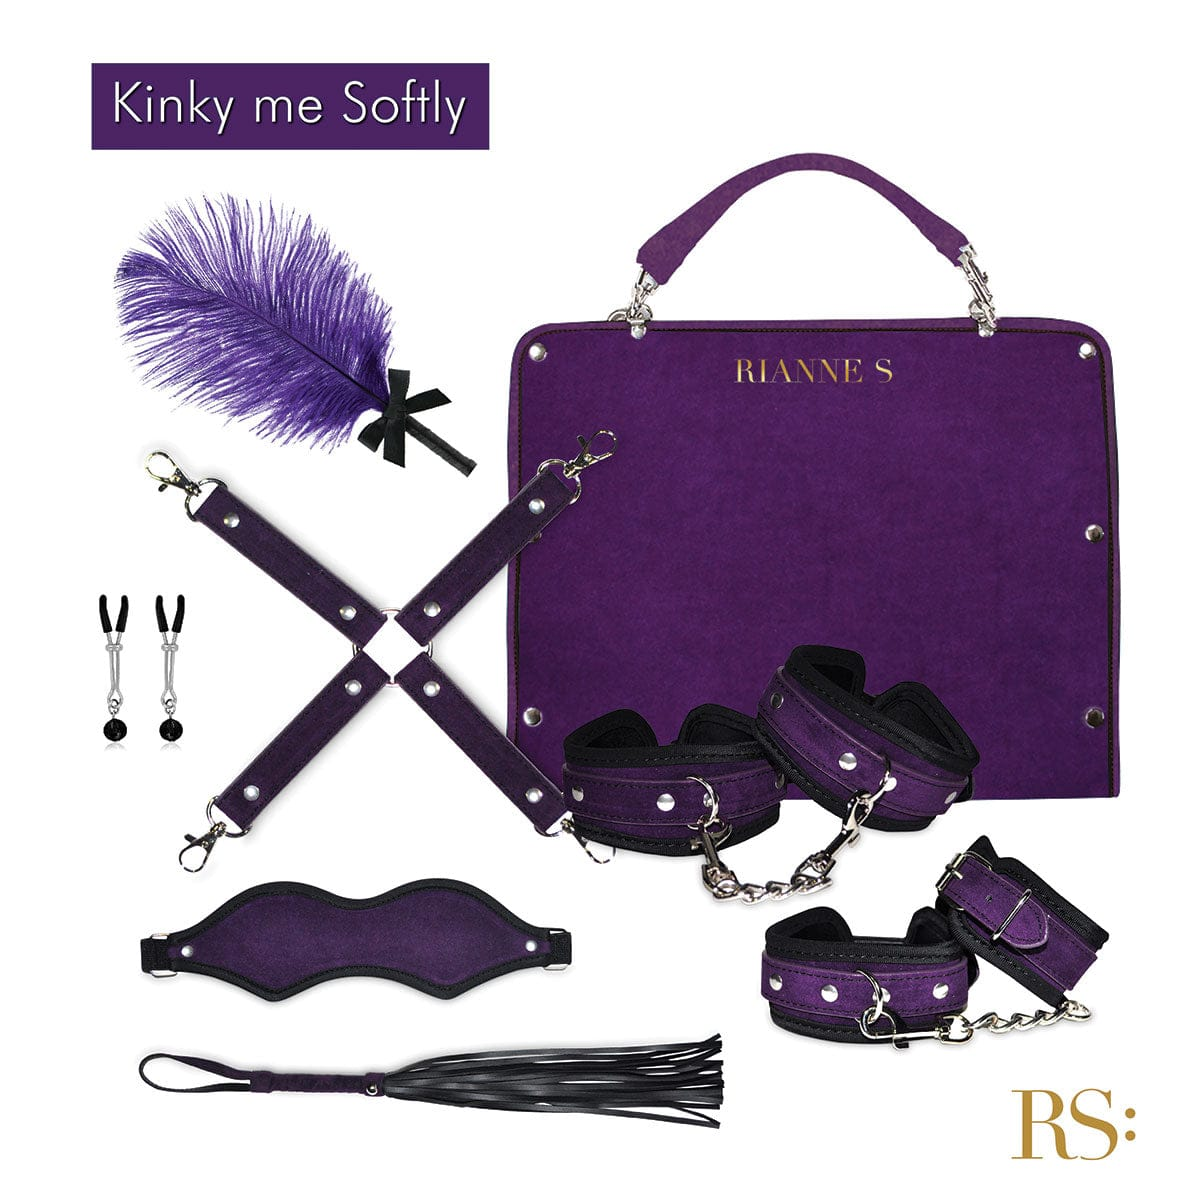 Rianne S Kinky Me Softly Bondage Kit Purple - Rolik®